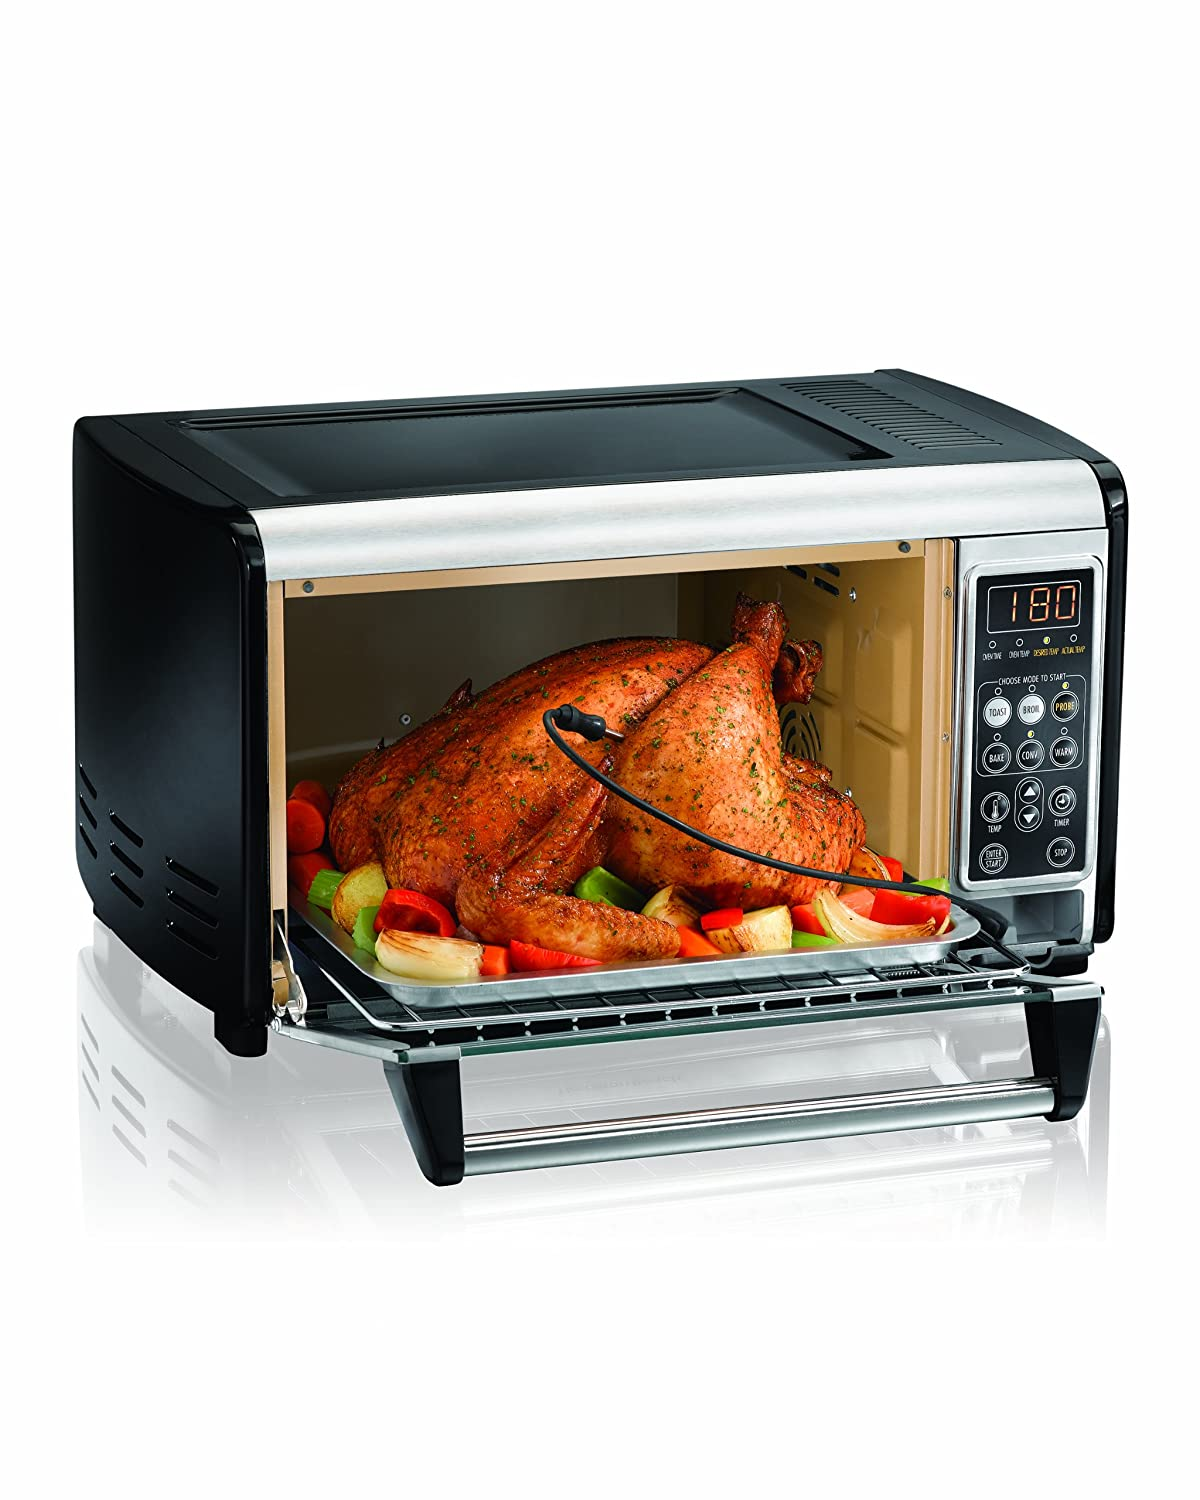 Amazon.com: Hamilton Beach 31230 Set & Forget Toaster Oven with Convection  Cooking: Kitchen & Dining